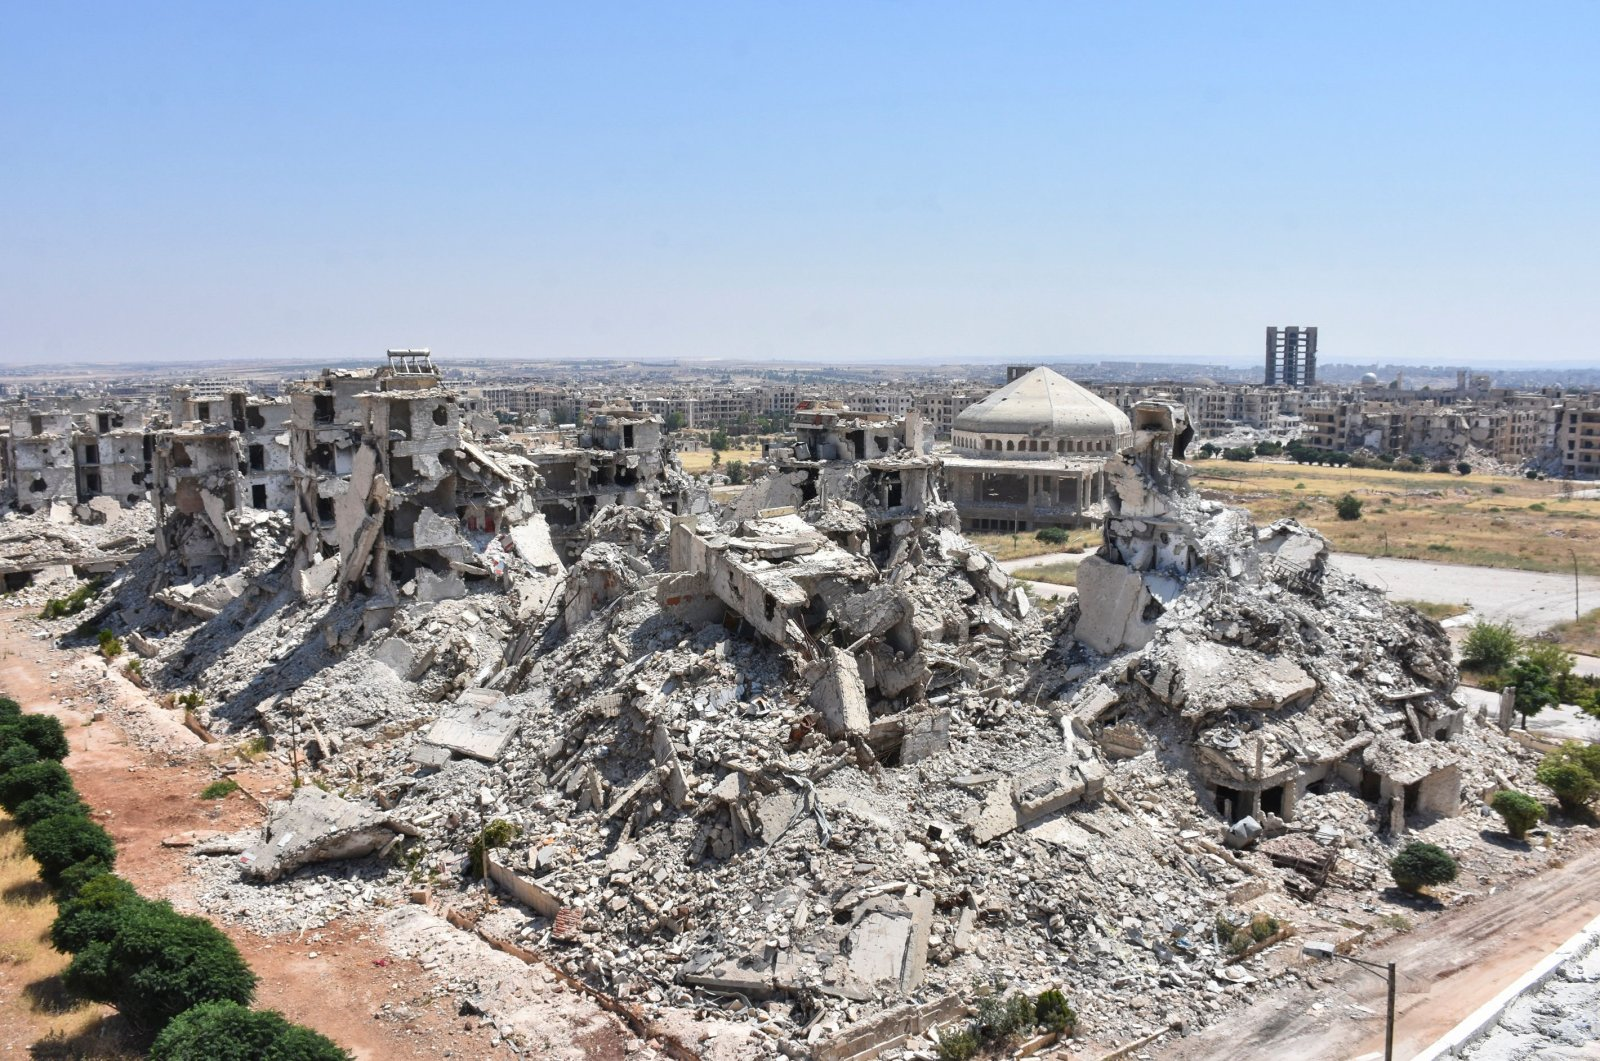 A general view shows al-Zahraa neighbourhood of Aleppo destroyed following years of conflict in Syria, July 6, 2020. (AFP Photo)